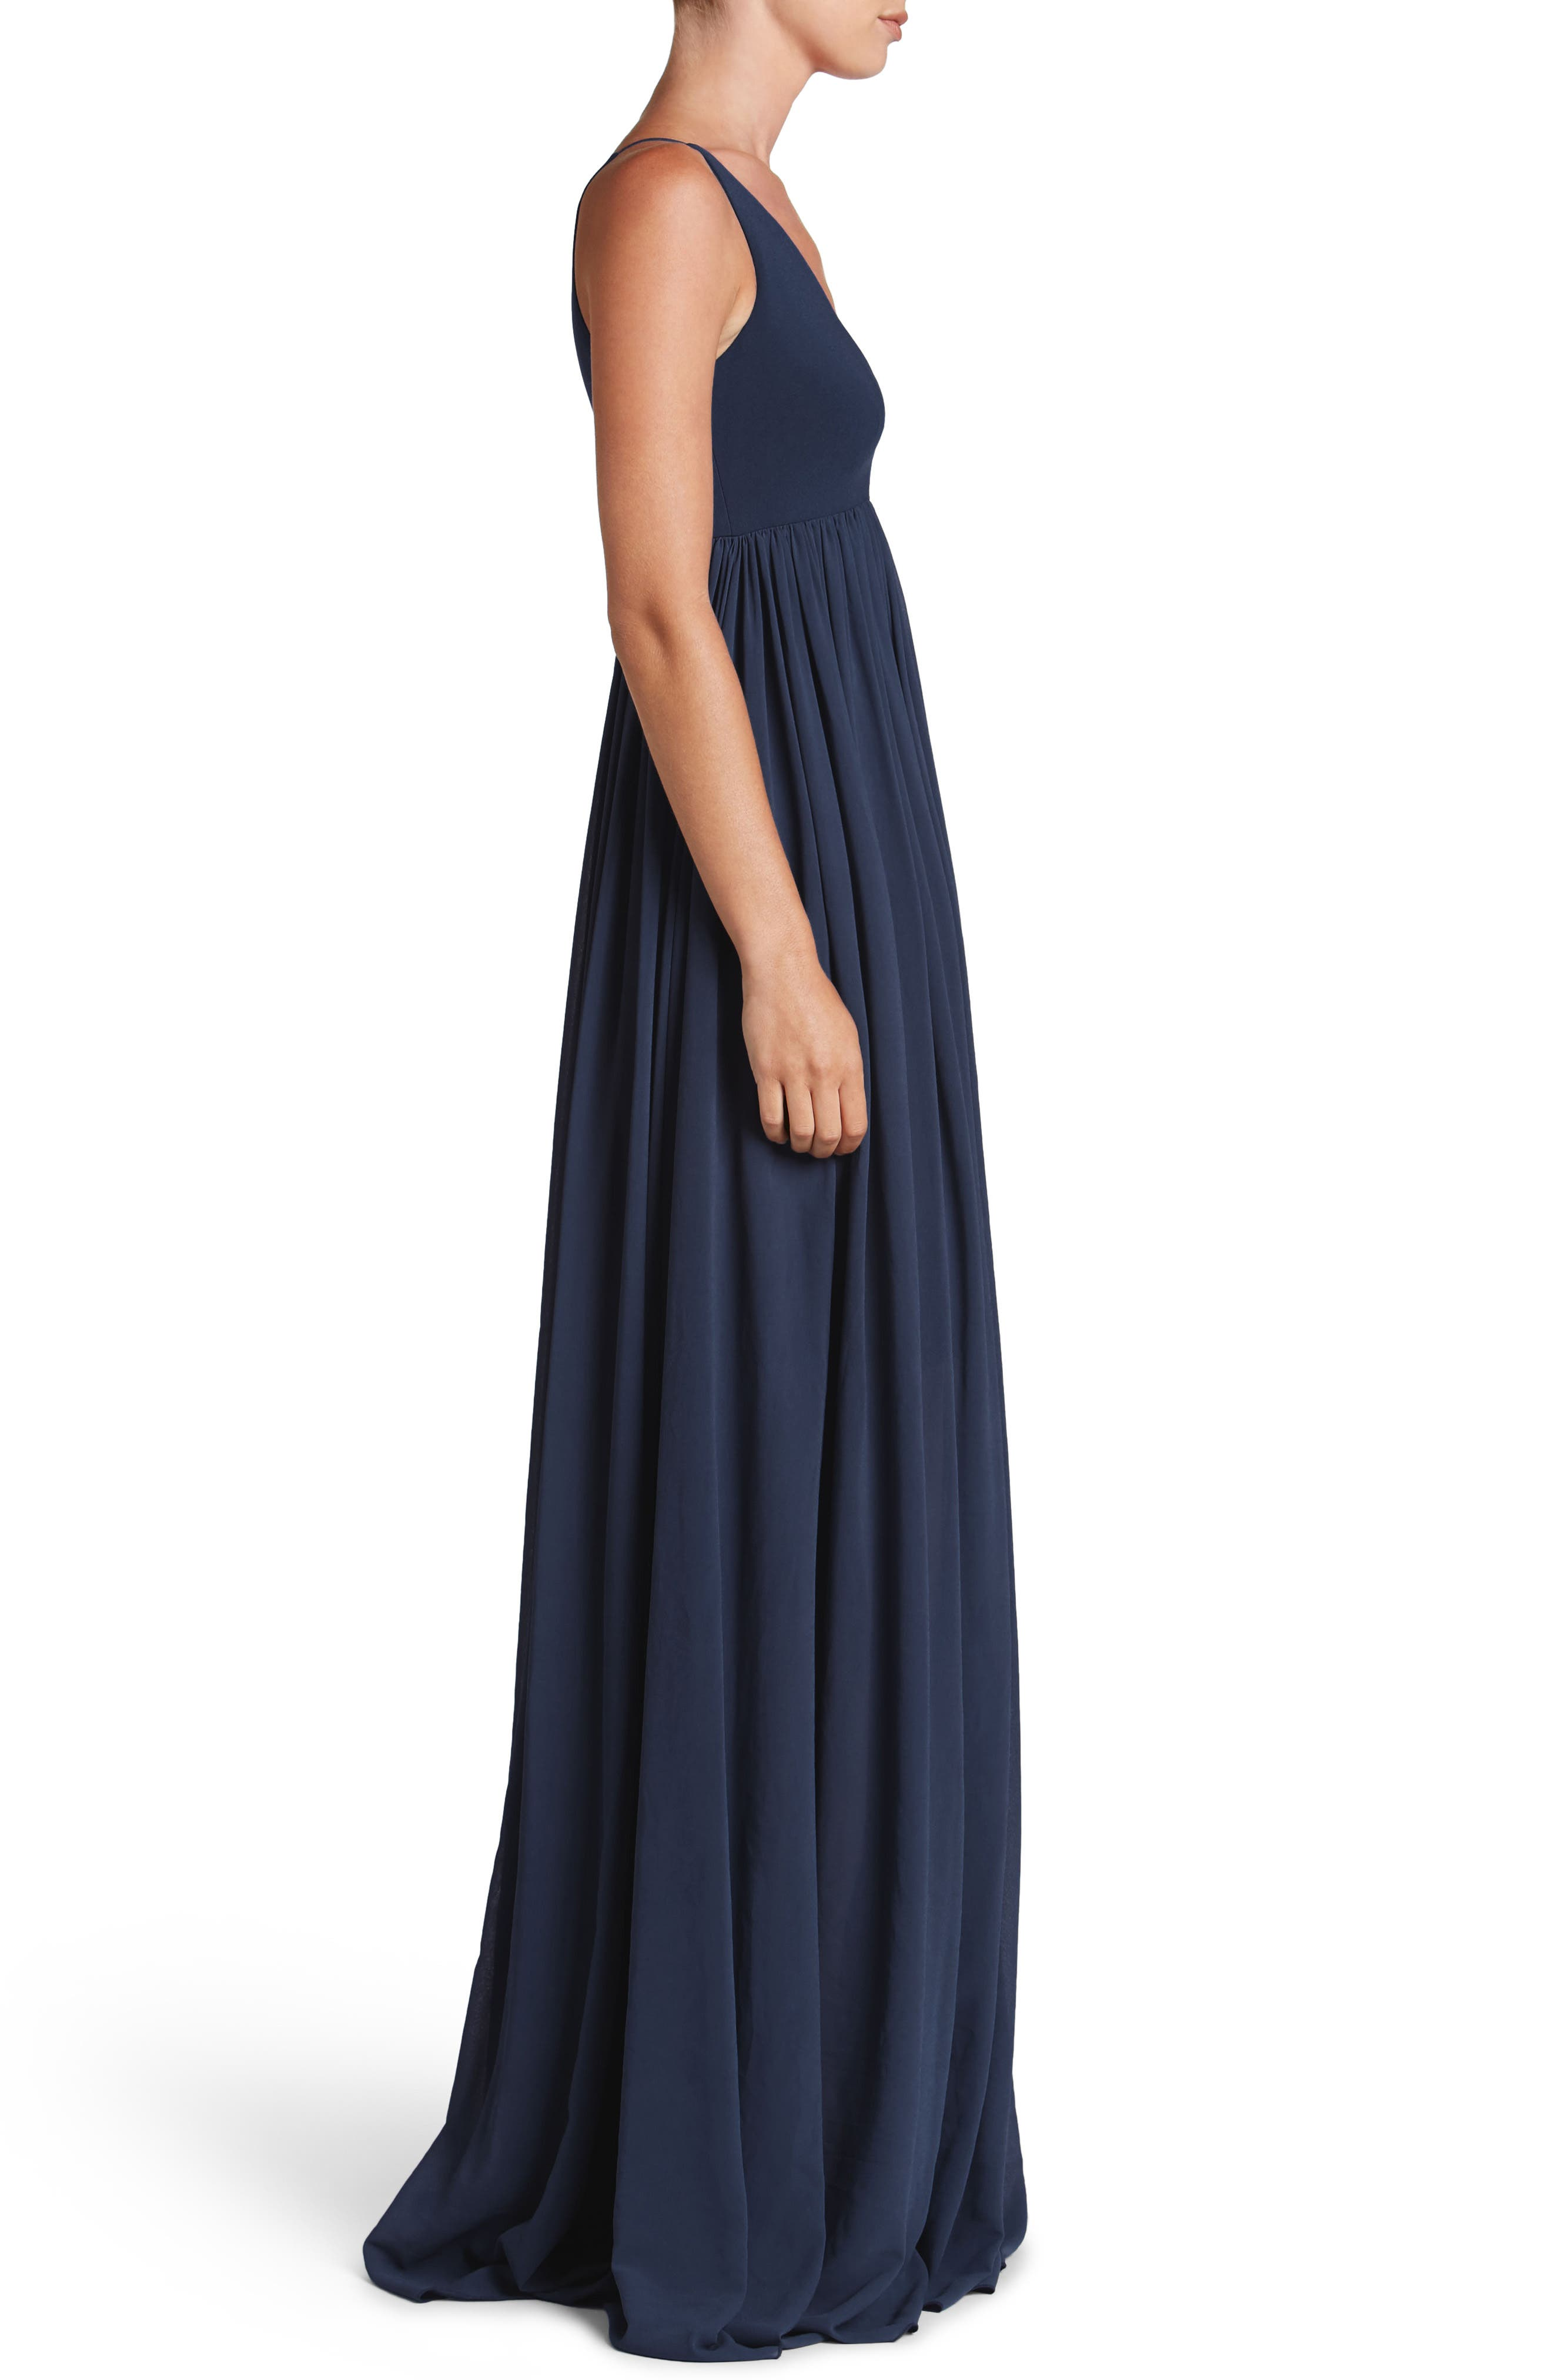 Phoebe Chiffon Gown,                             Alternate thumbnail 9, color,